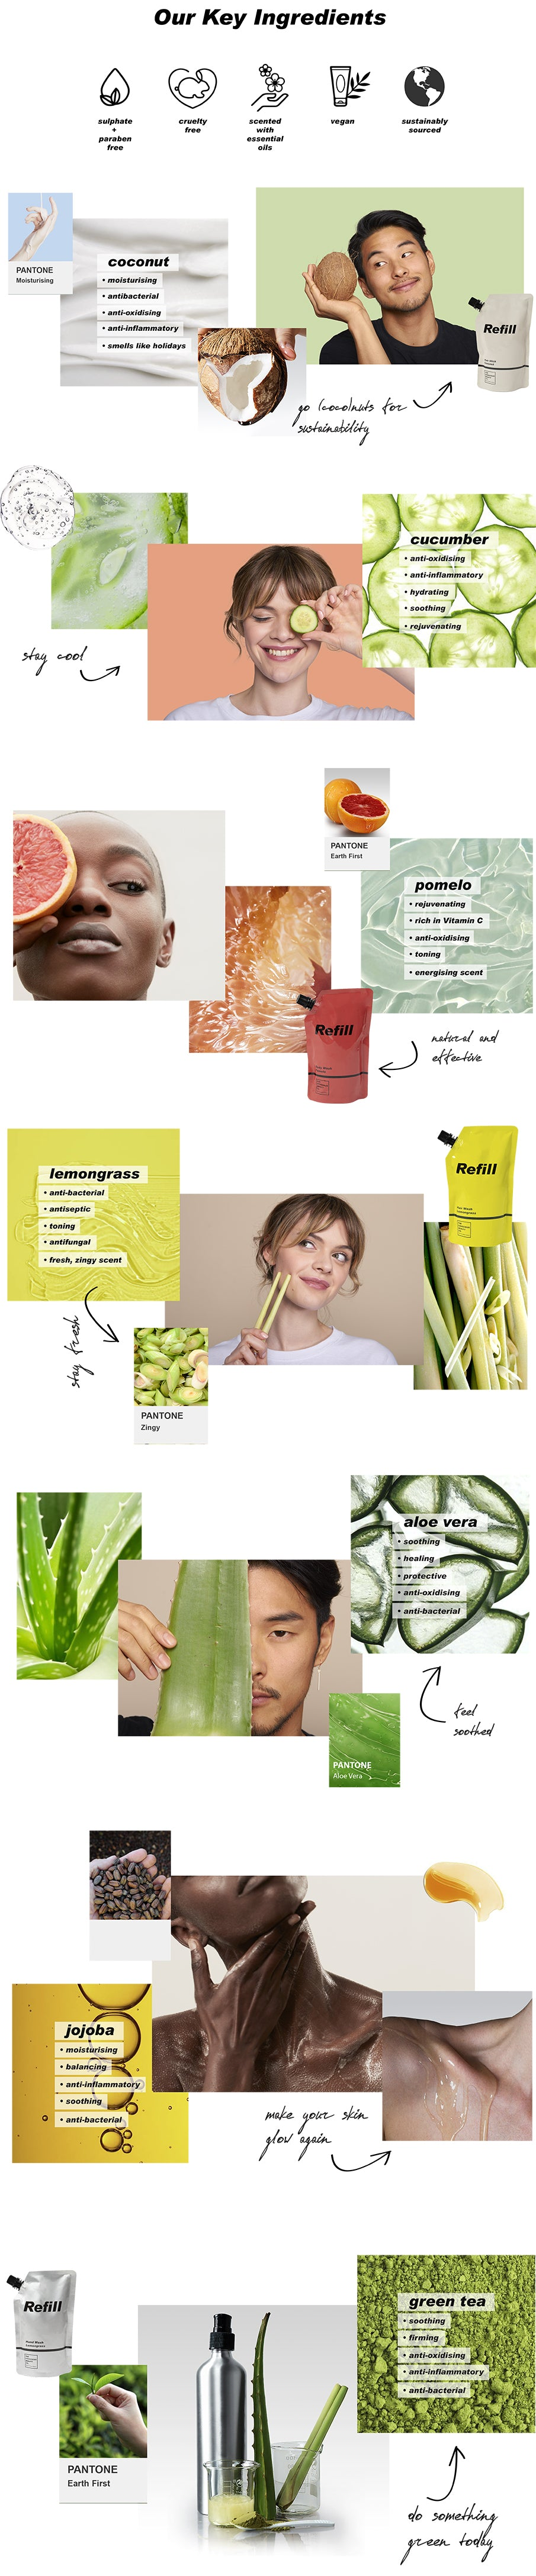 ingredients_banner